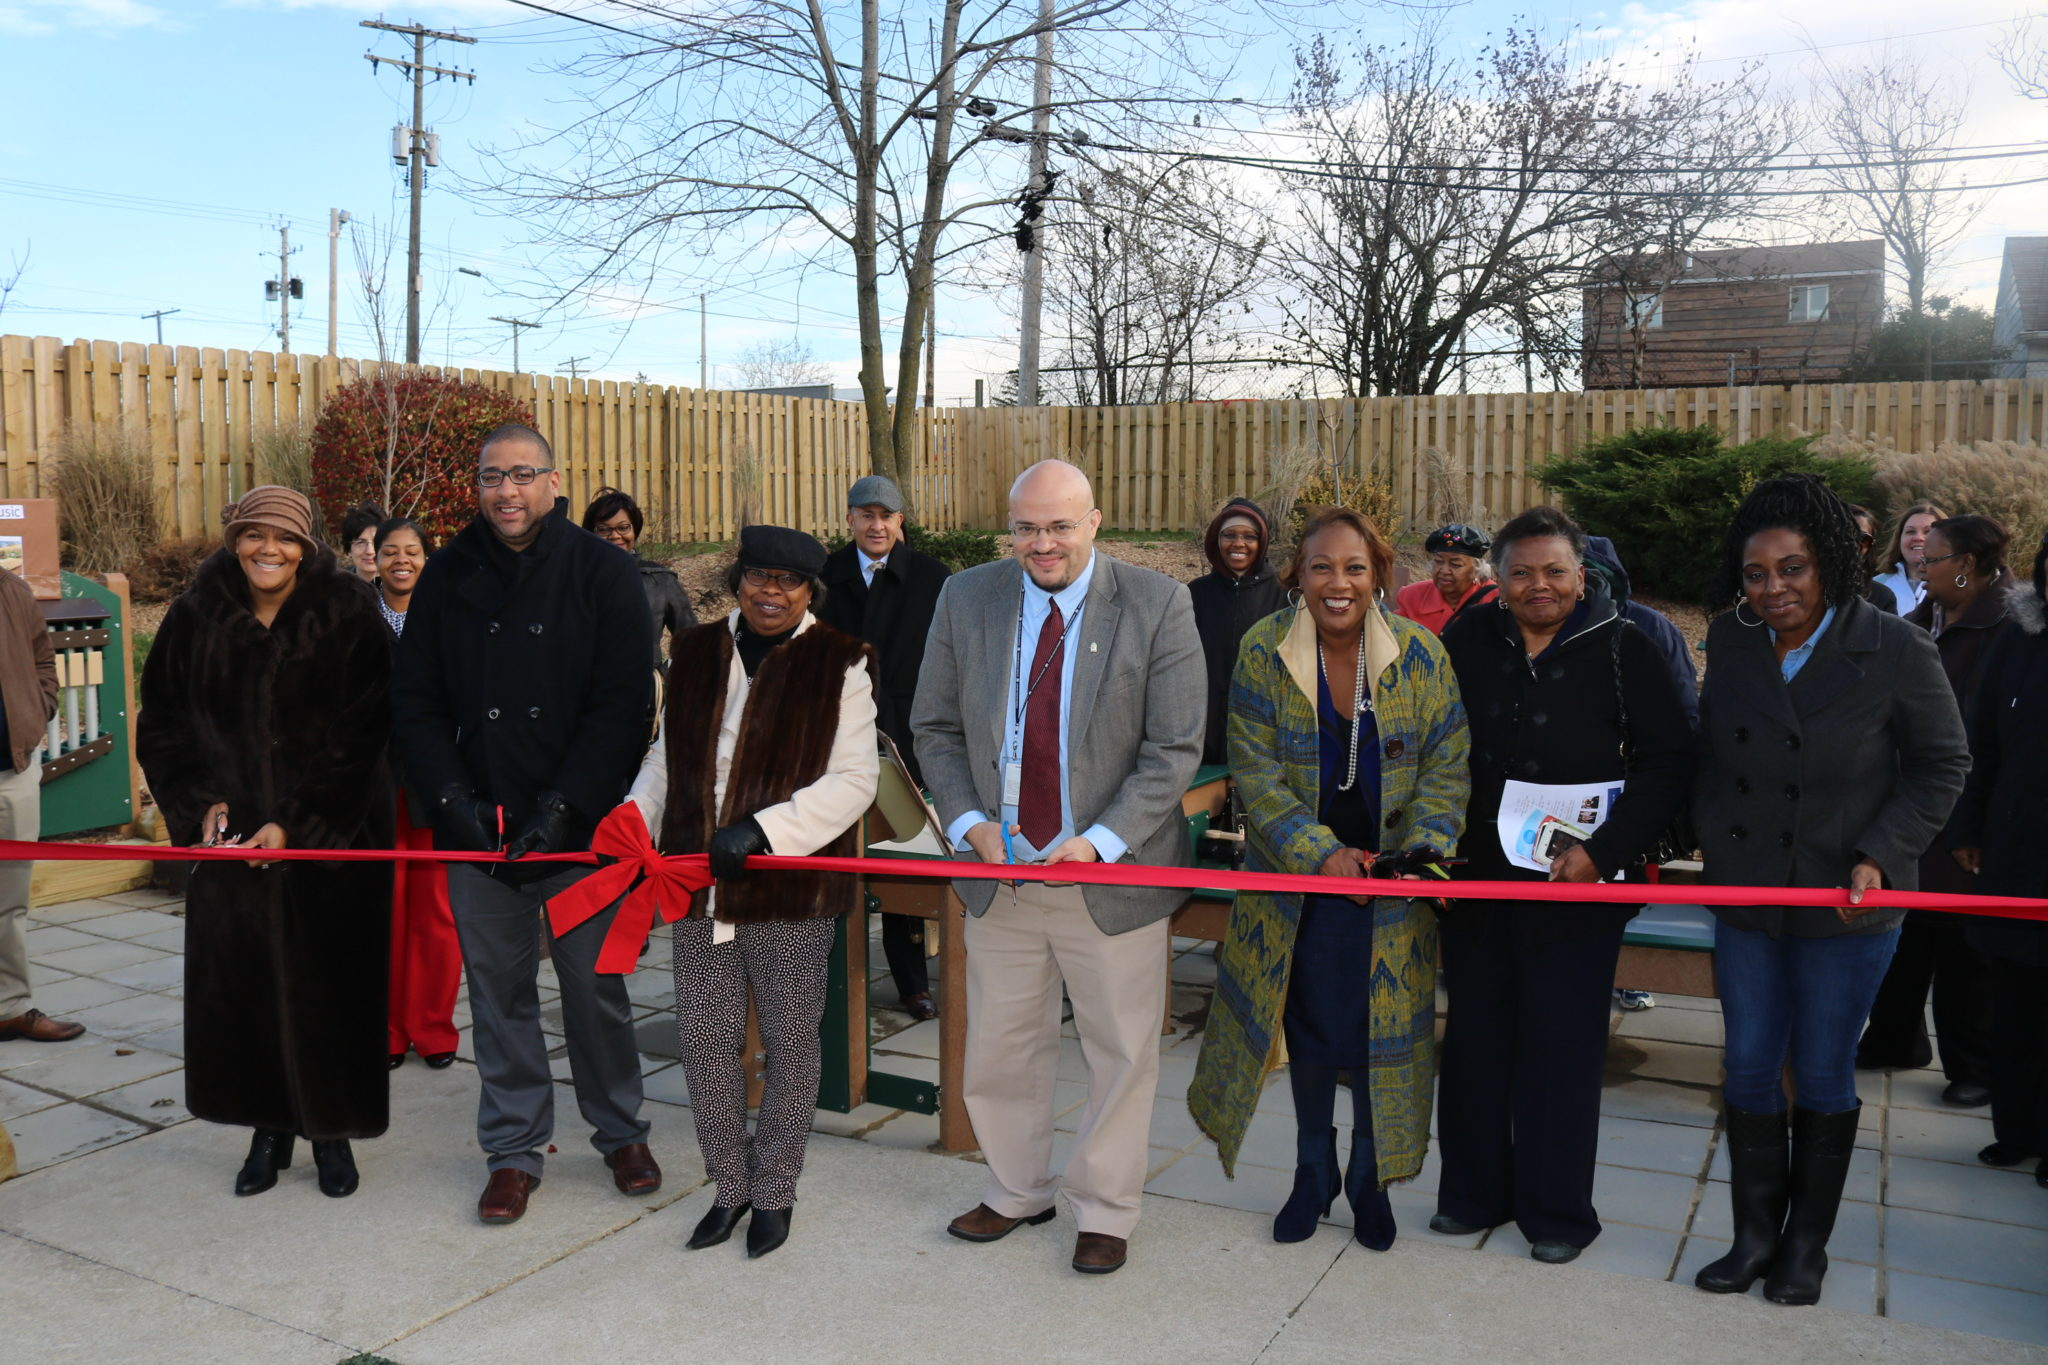 CEOGC staff, board members and community partners cut the ribbon to officially open the certified outdoor classroom